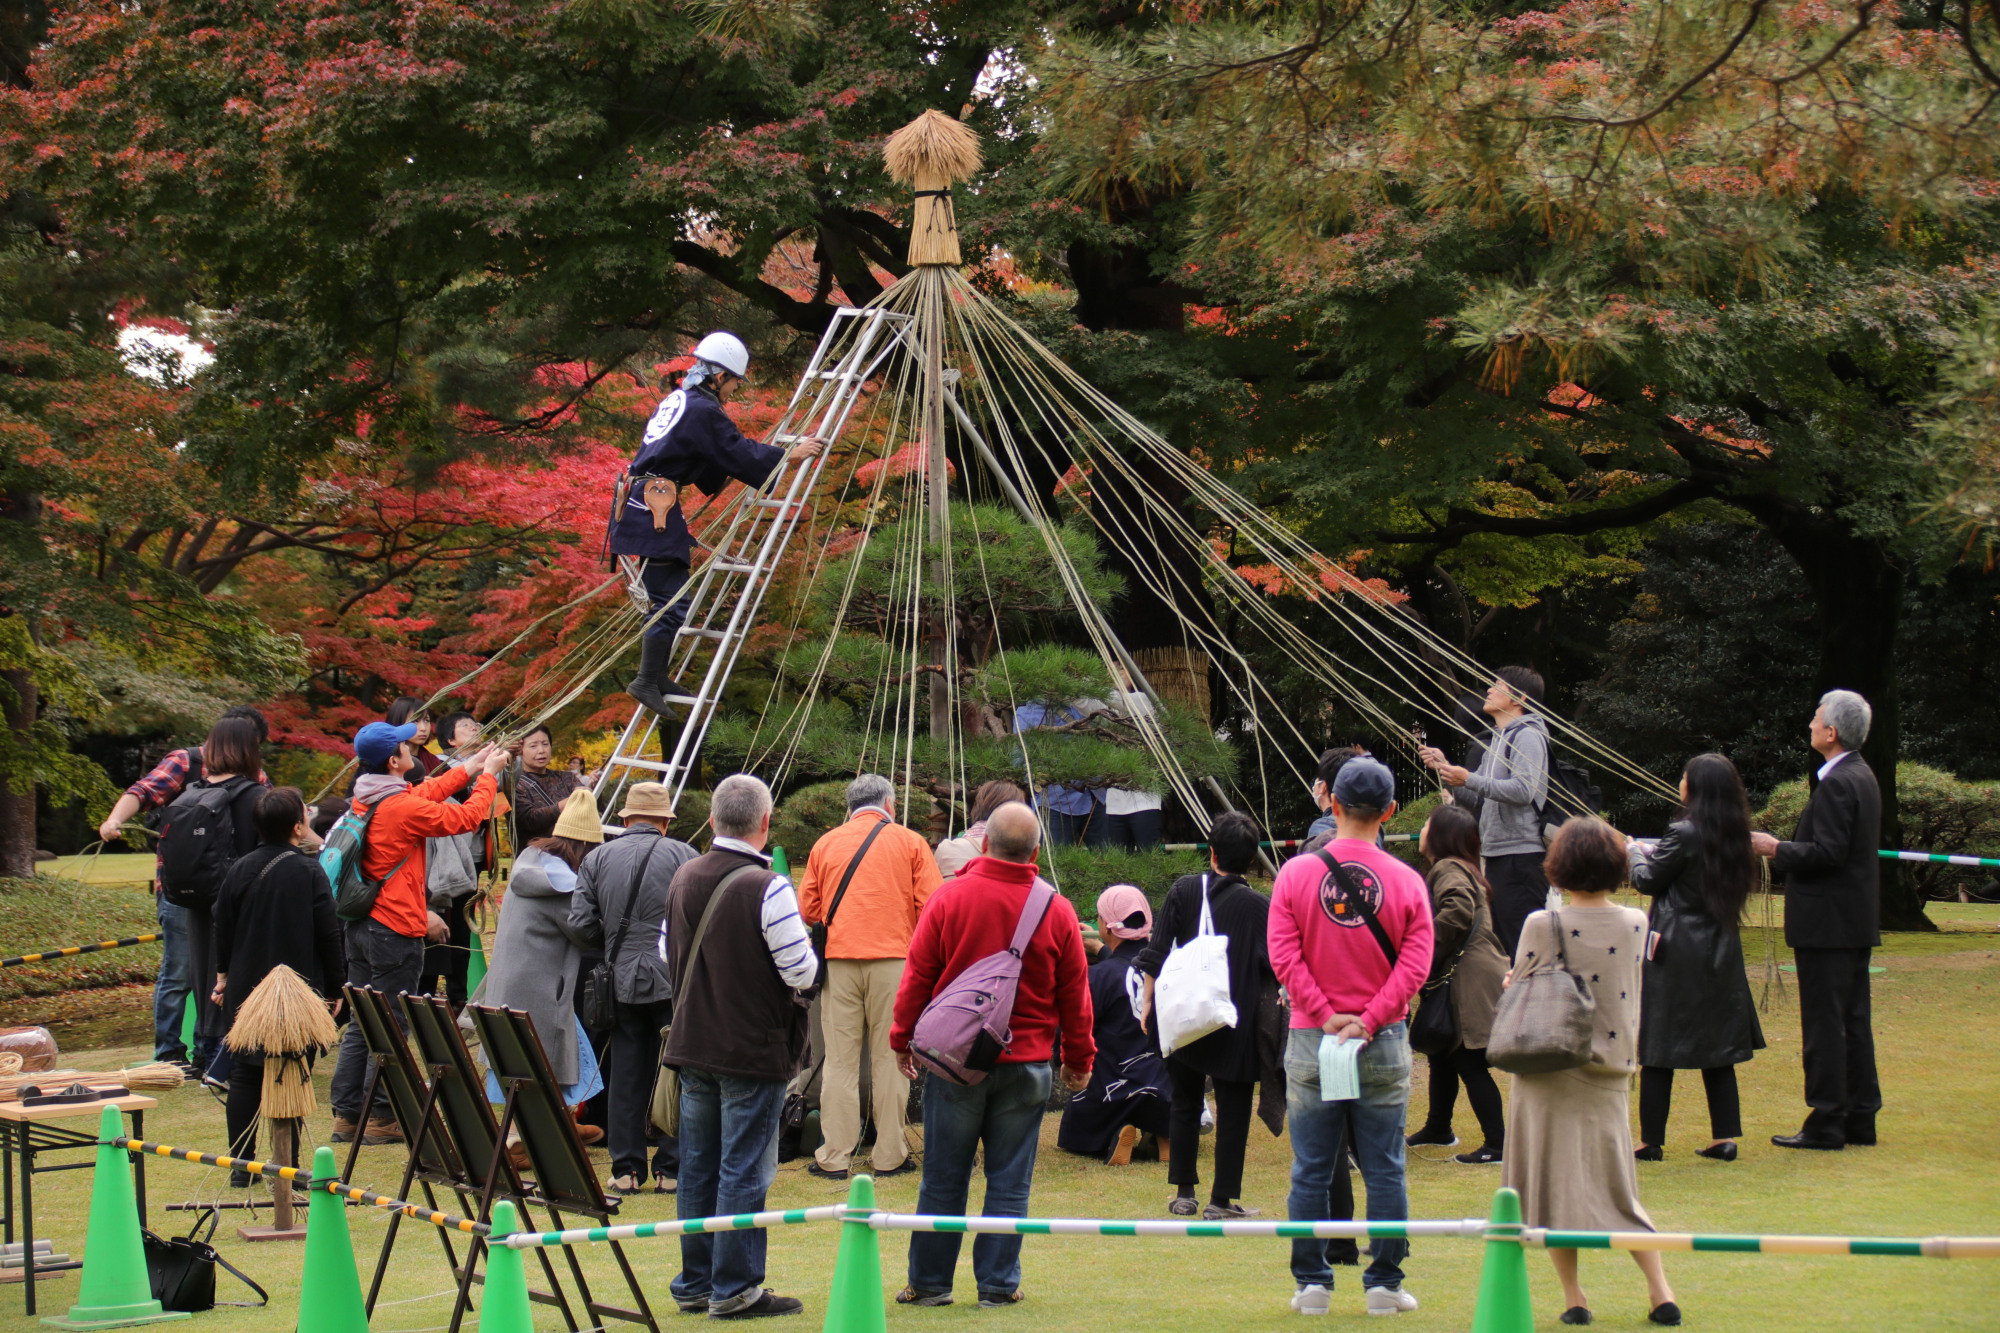 Trussing the trees: Members of the public gather to set up yukitsuri, ropes designed to protect trees from heavy snowfall. | KIT NAGAMURA